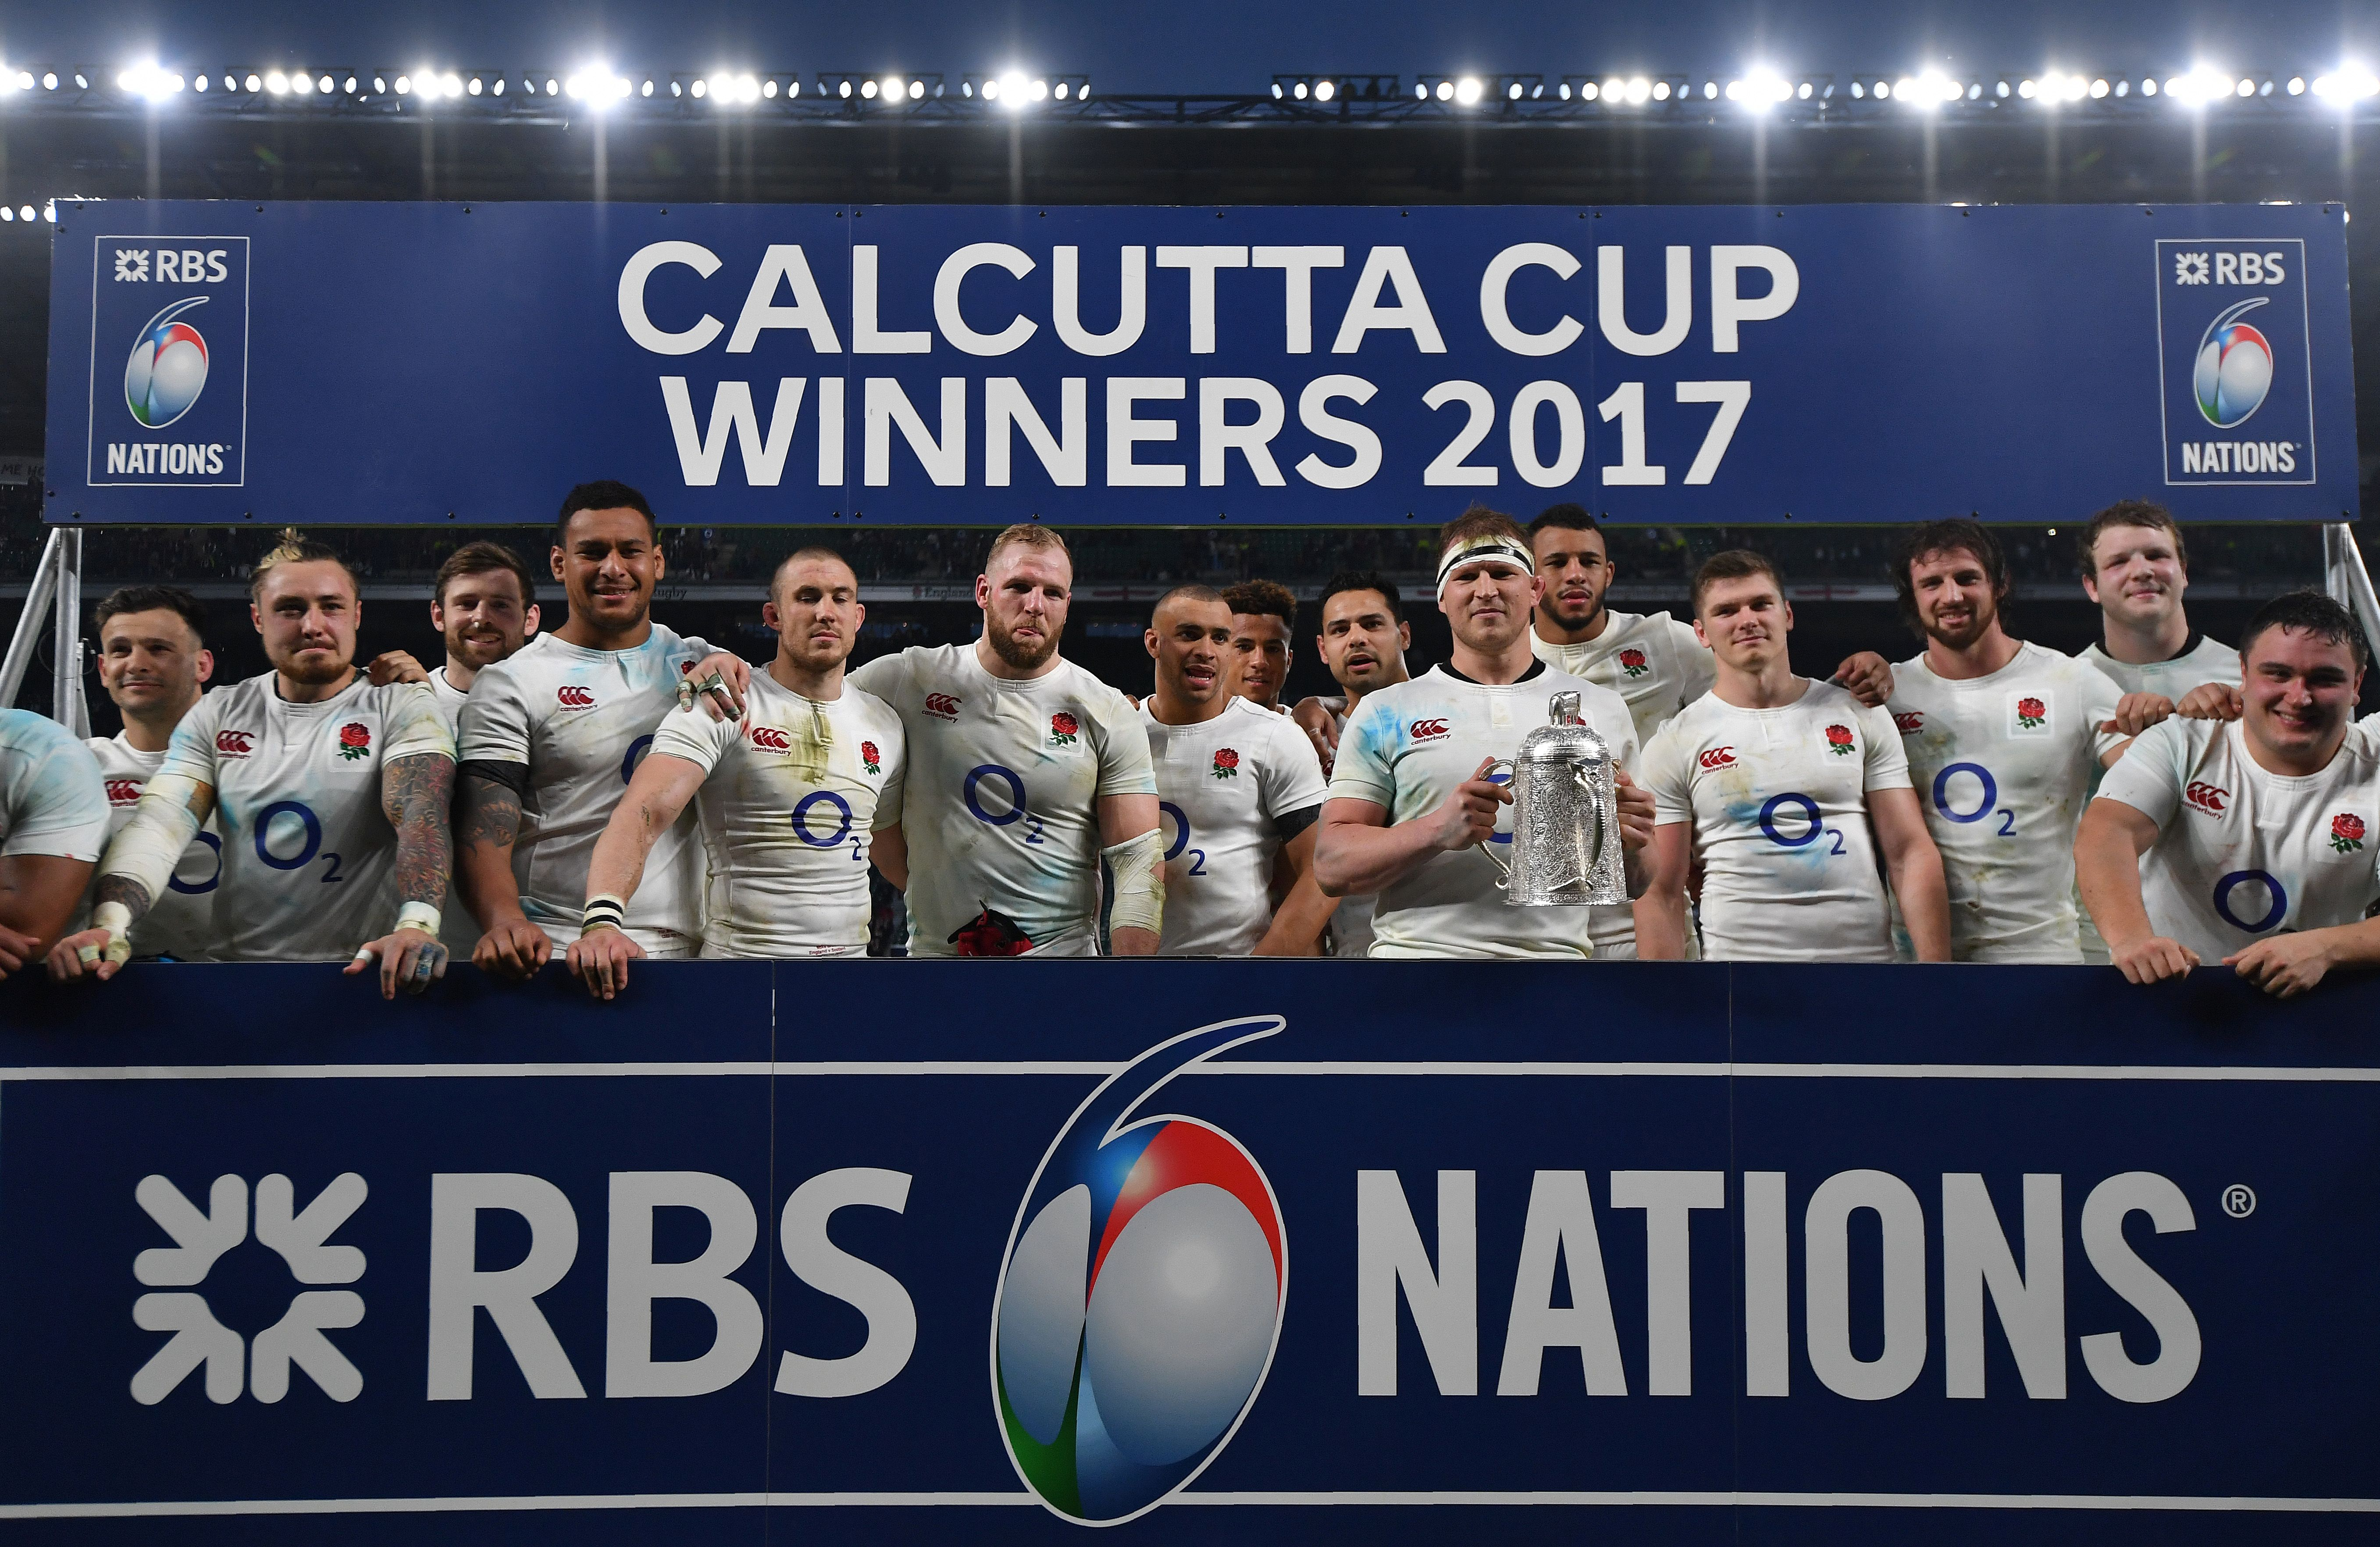 England's hooker and captain Dylan Hartley holds the Calcutta Cup trophy as he poses with teammates atfter winning the Six Nations international rugby union match between England and Scotland at Twickenham stadium in south west London on March 11, 2017. England thrashed Scotland 61-21 at Twickenham on Saturday to win the Six Nations title and equal New Zealand's record of 18 successive Test wins by a 'tier one' nation. / AFP PHOTO / Ben STANSALL        (Photo credit should read BEN STANSALL/AFP/Getty Images)